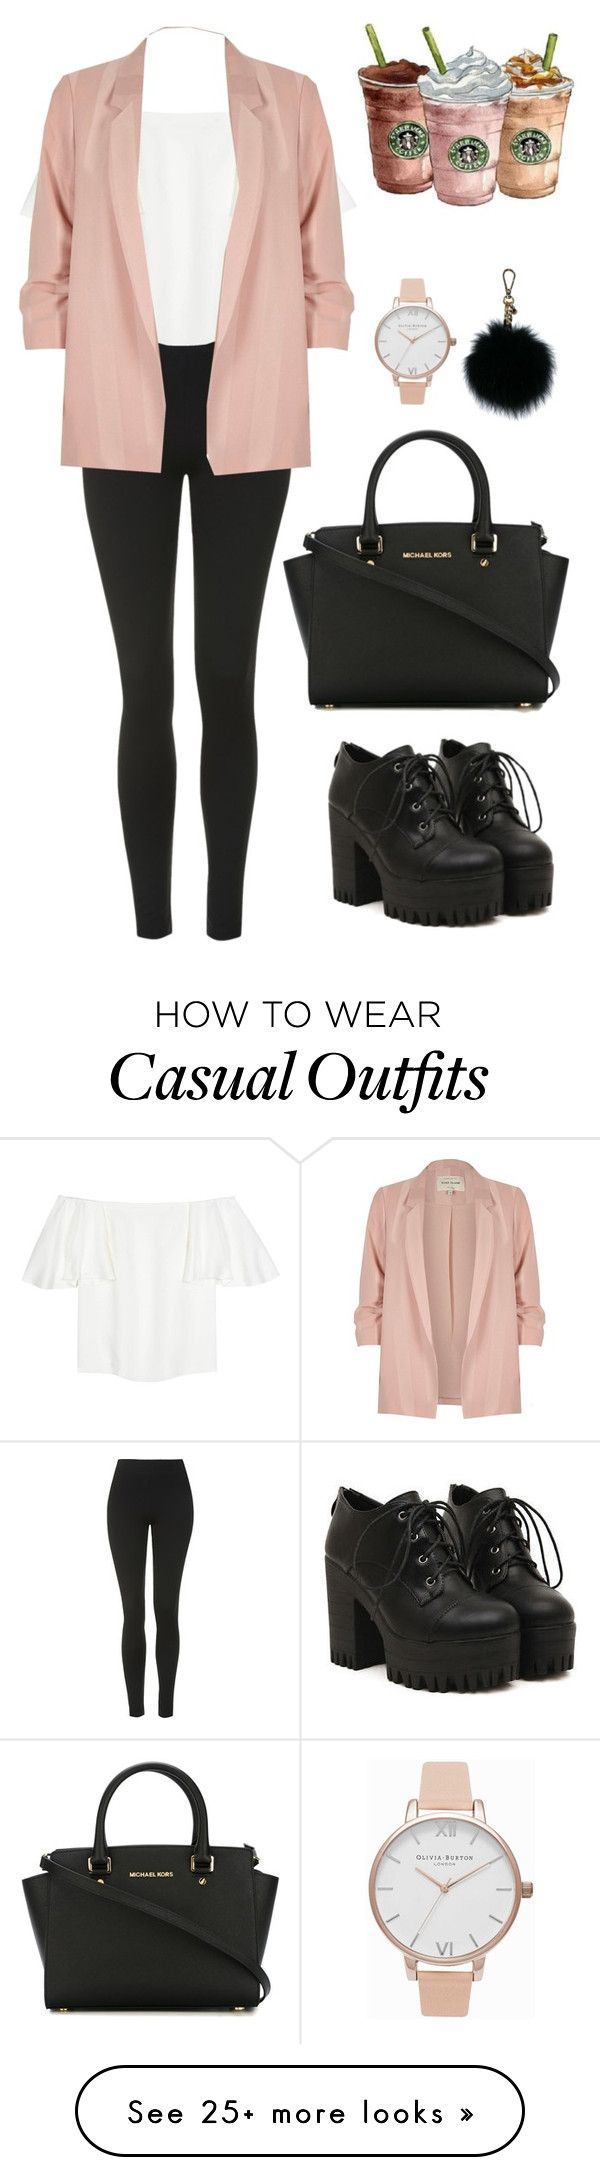 """Work (chic + casual)"" by alessialex2000 on Polyvore featuring Topshop, Valentino, River Island, MICHAEL Michael Kors and Olivia Burton"